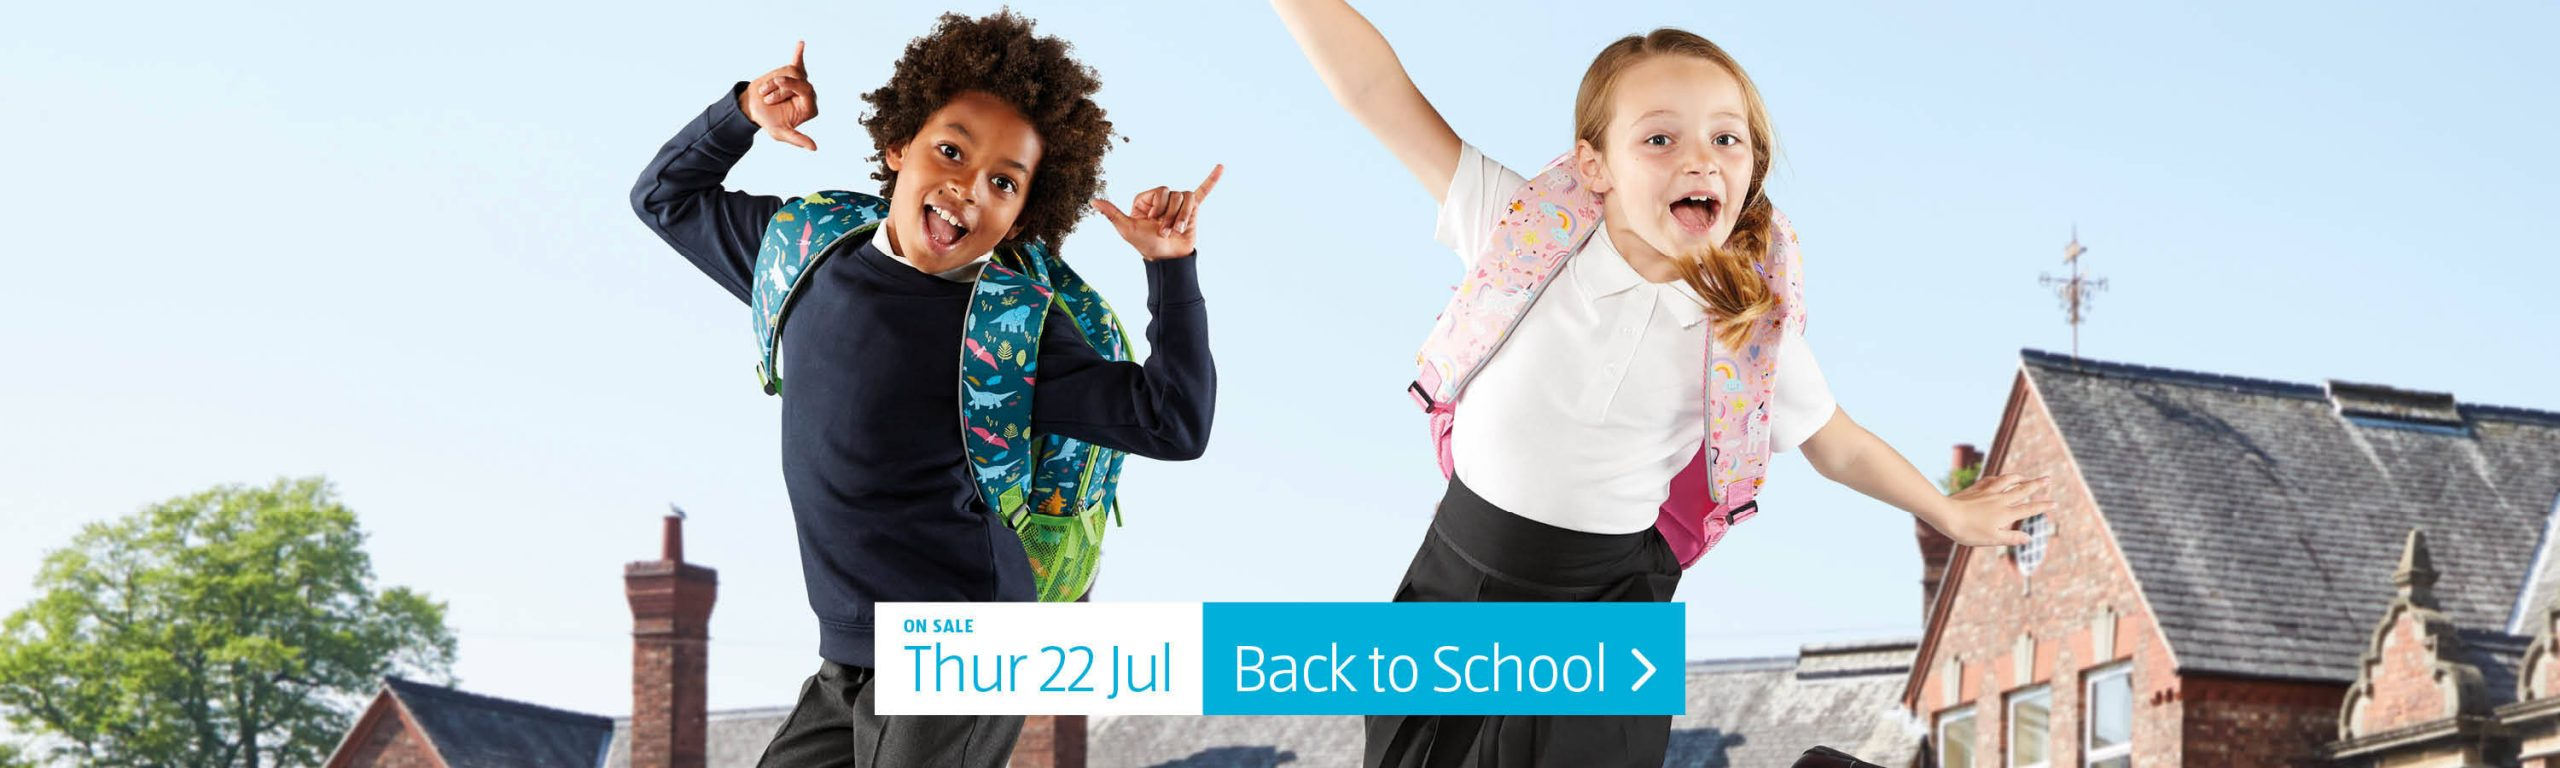 ALDI Back To School from 22nd July 2021 ALDI Thursday Offers